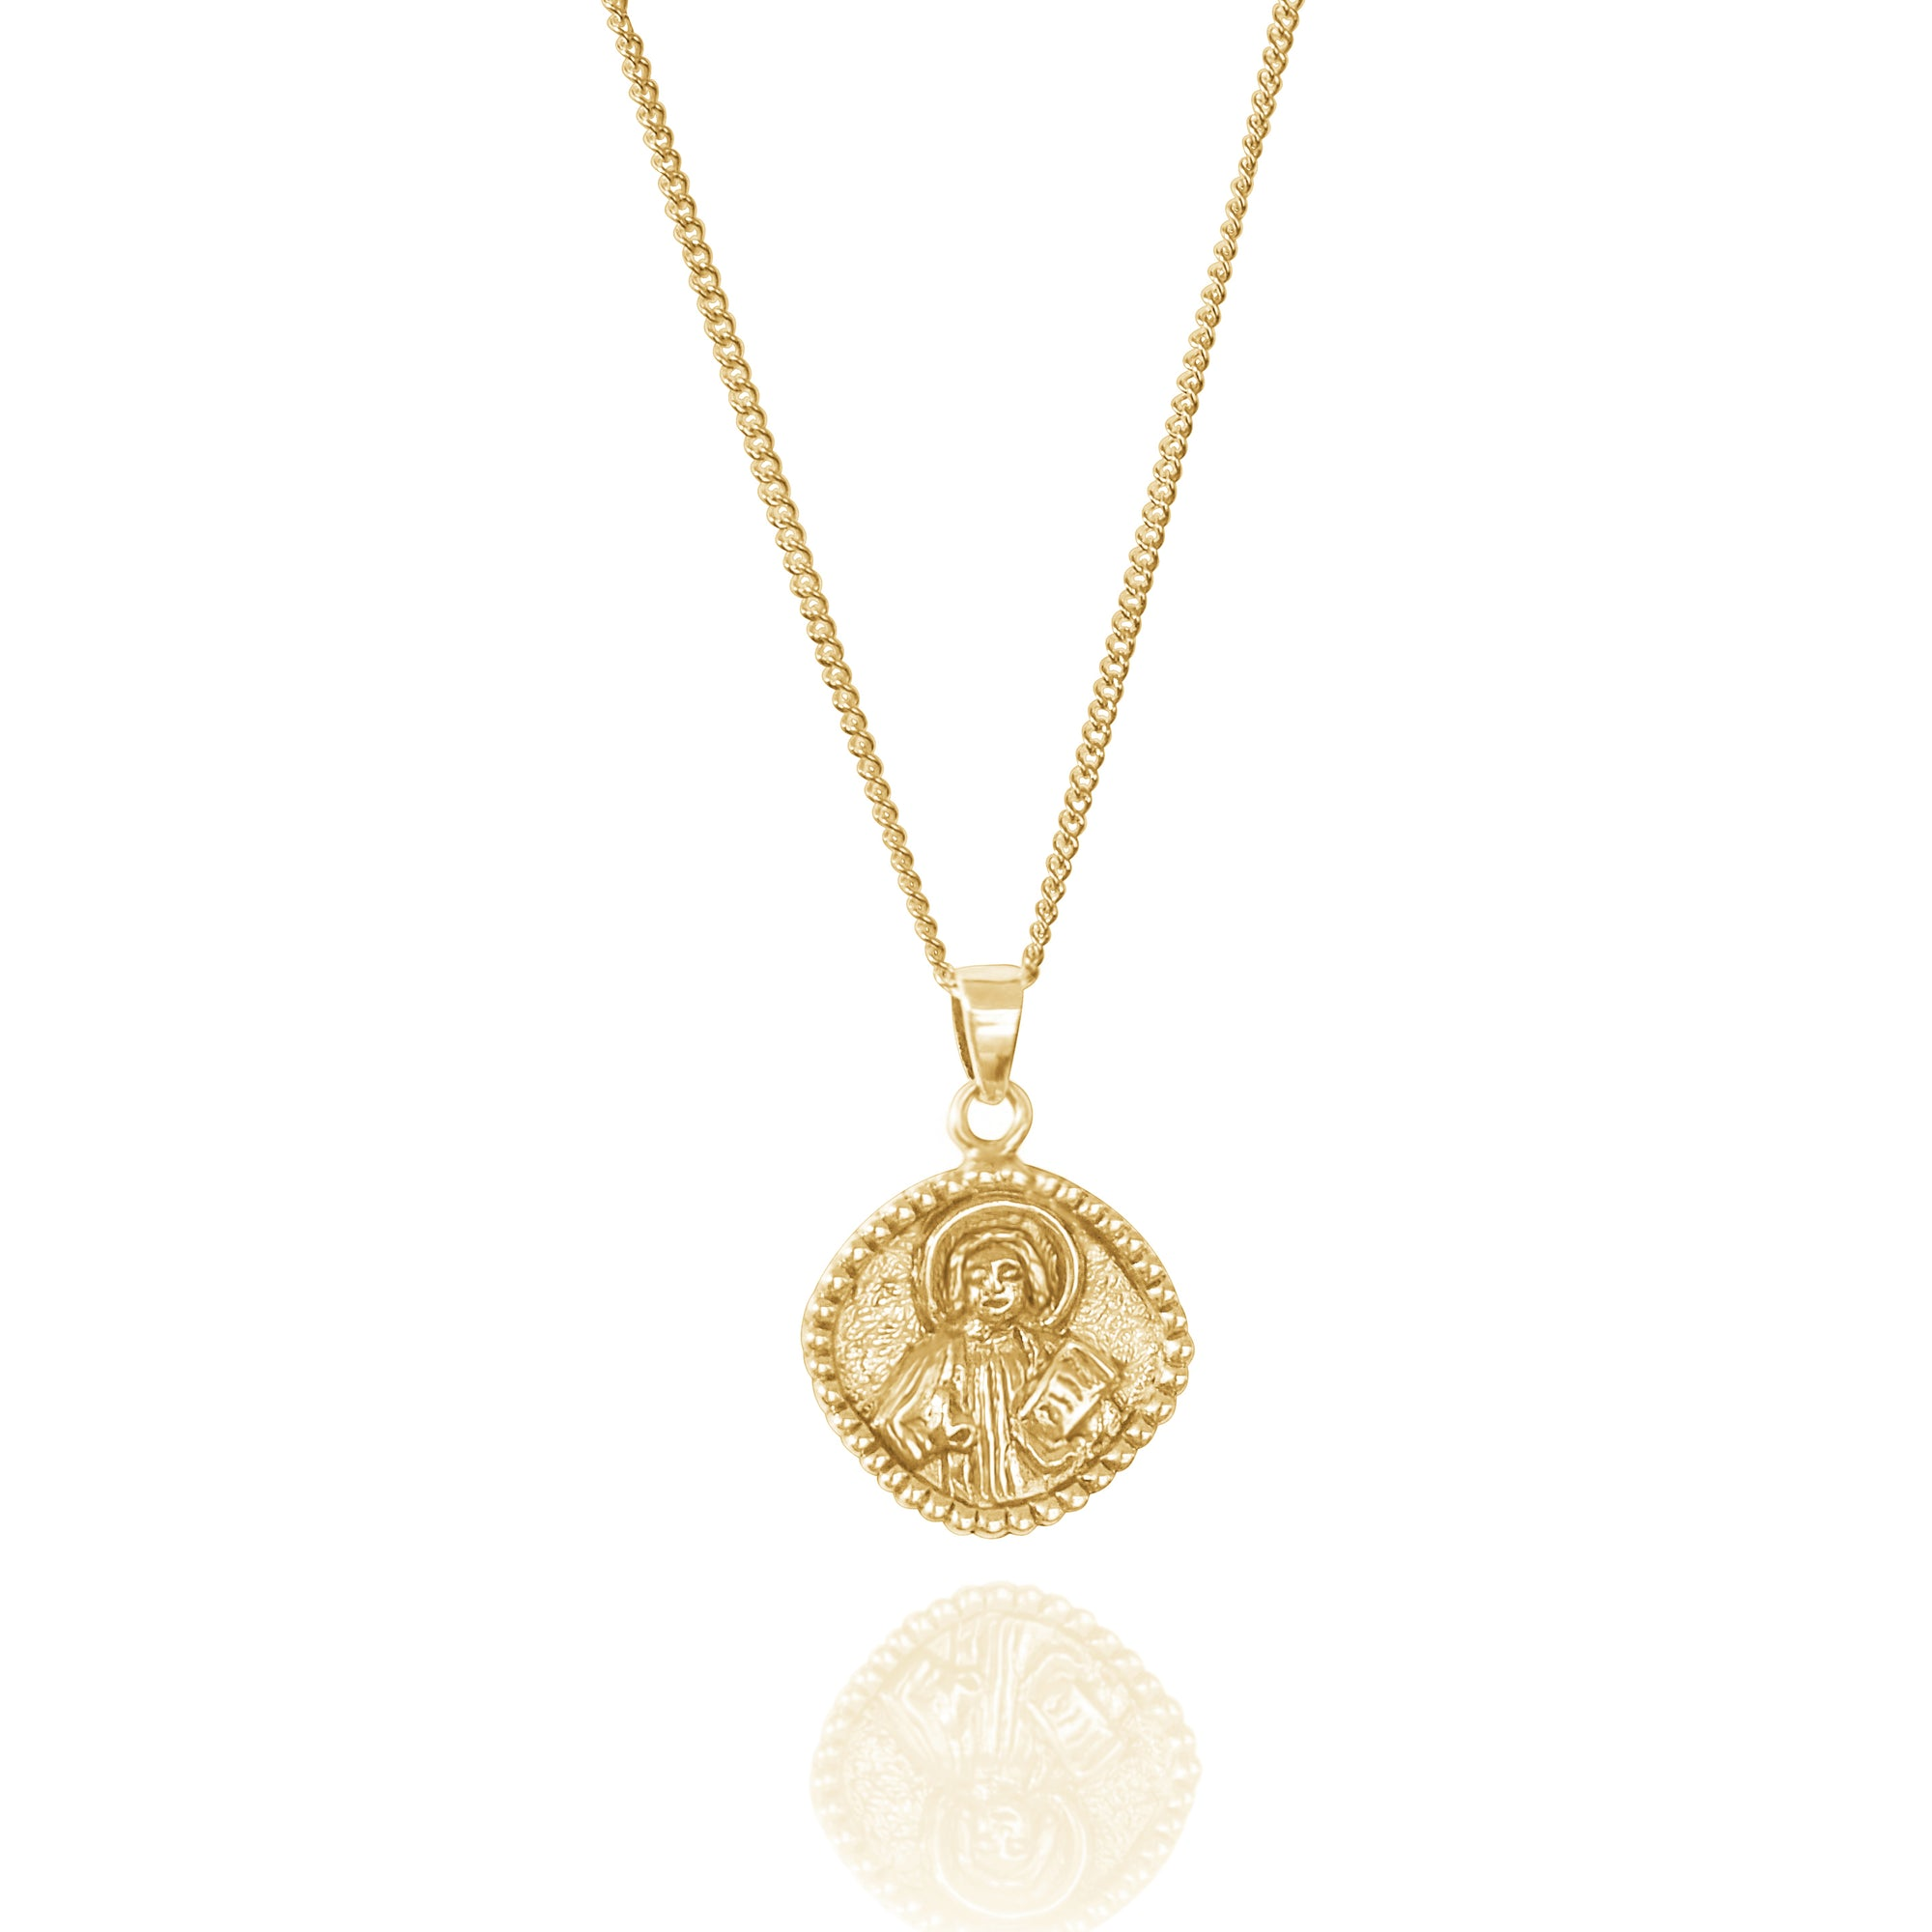 Solid 9kt Gold St John Friendship Pendant Necklace